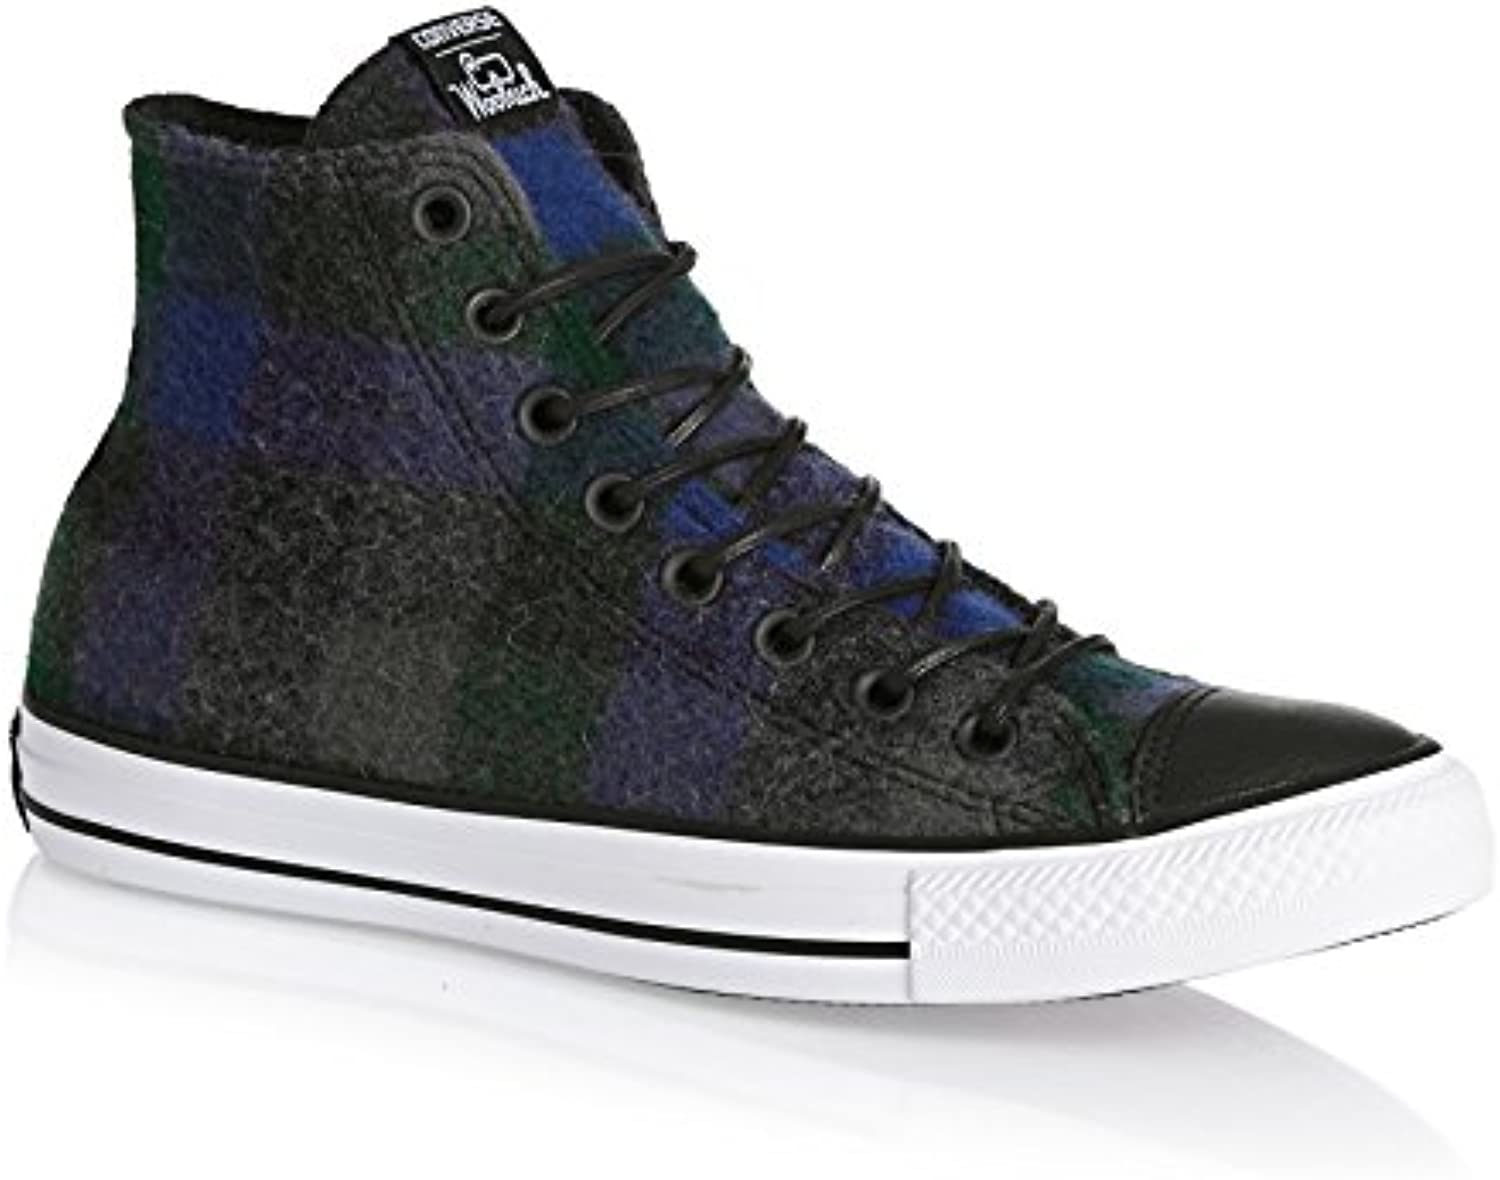 Converse Trainers   Converse Chuck Taylor All Star HI Shoes (Wool)   Grey